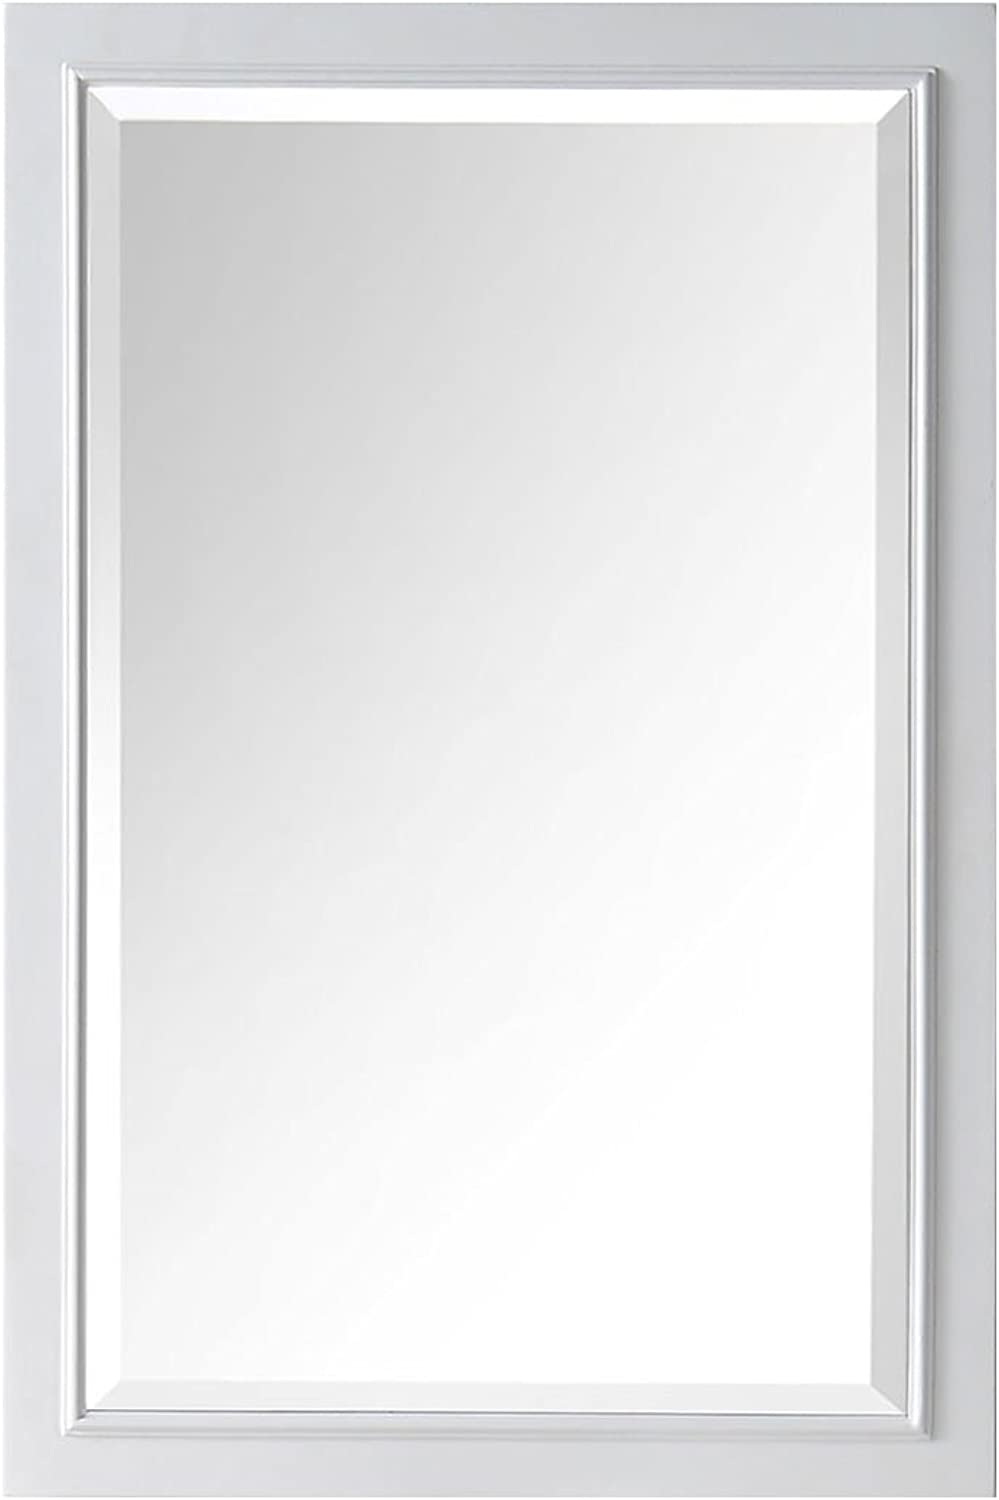 DP HomeTextiles 24 x 36 in Wall Mount Mirror with White Frame (DK-C-6000-WM)